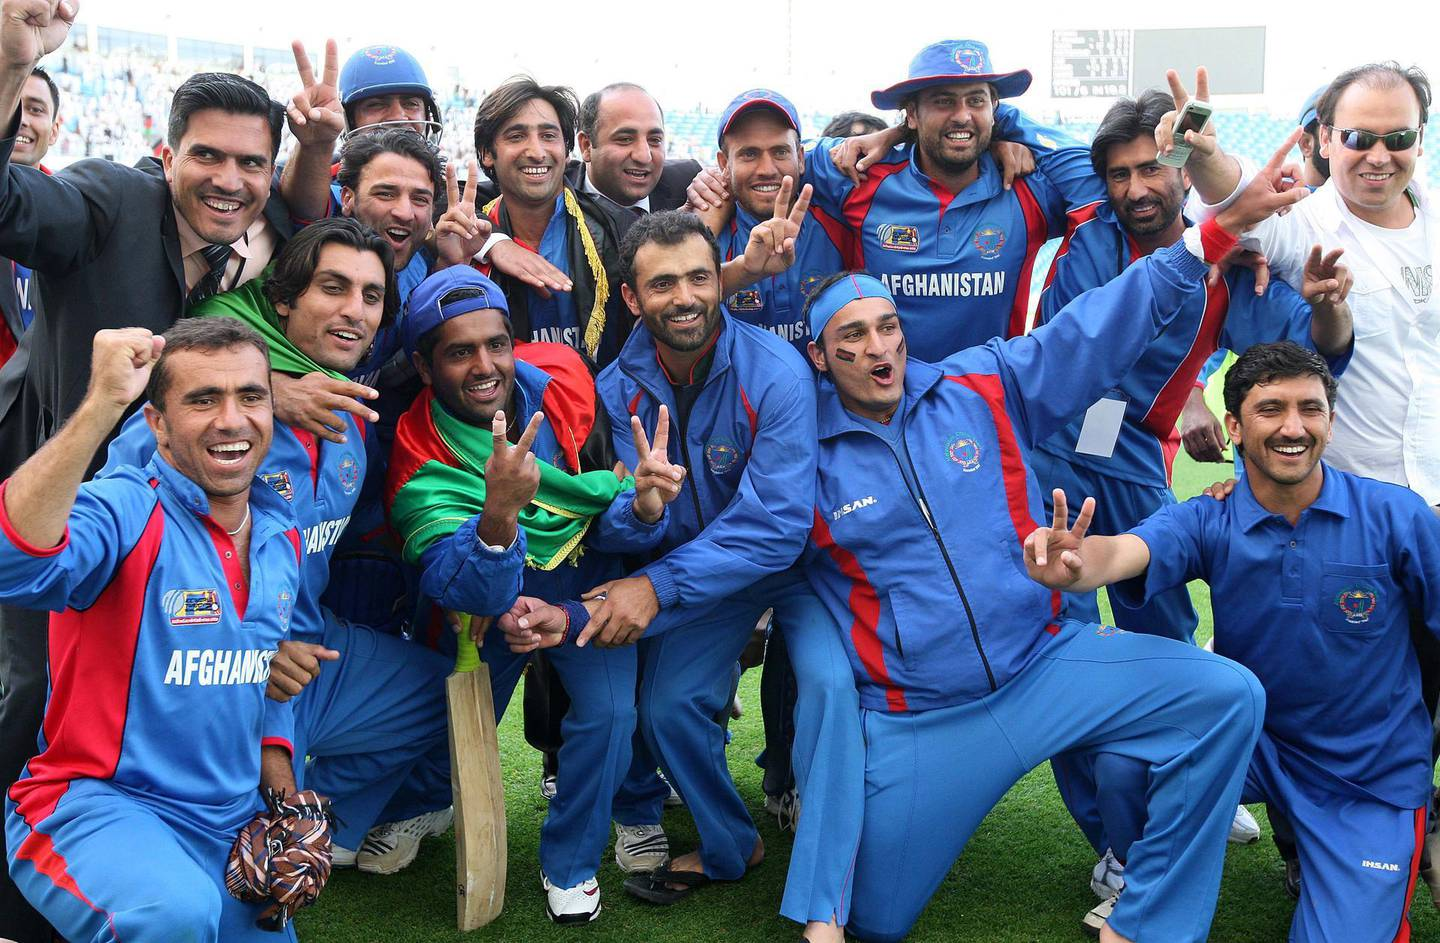 DUBAI, UNITED ARAB EMIRATES, Feb 13 Afghanistan cricket team players and officials in a jubilant mood after Afghanistan beat UAE by 4 wickets in the ICC world twenty20 qualifier cricket match at Dubai International Cricket Stadium in Dubai Sports City in Dubai. (Pawan Singh / The National) For Sports. Story by Paul